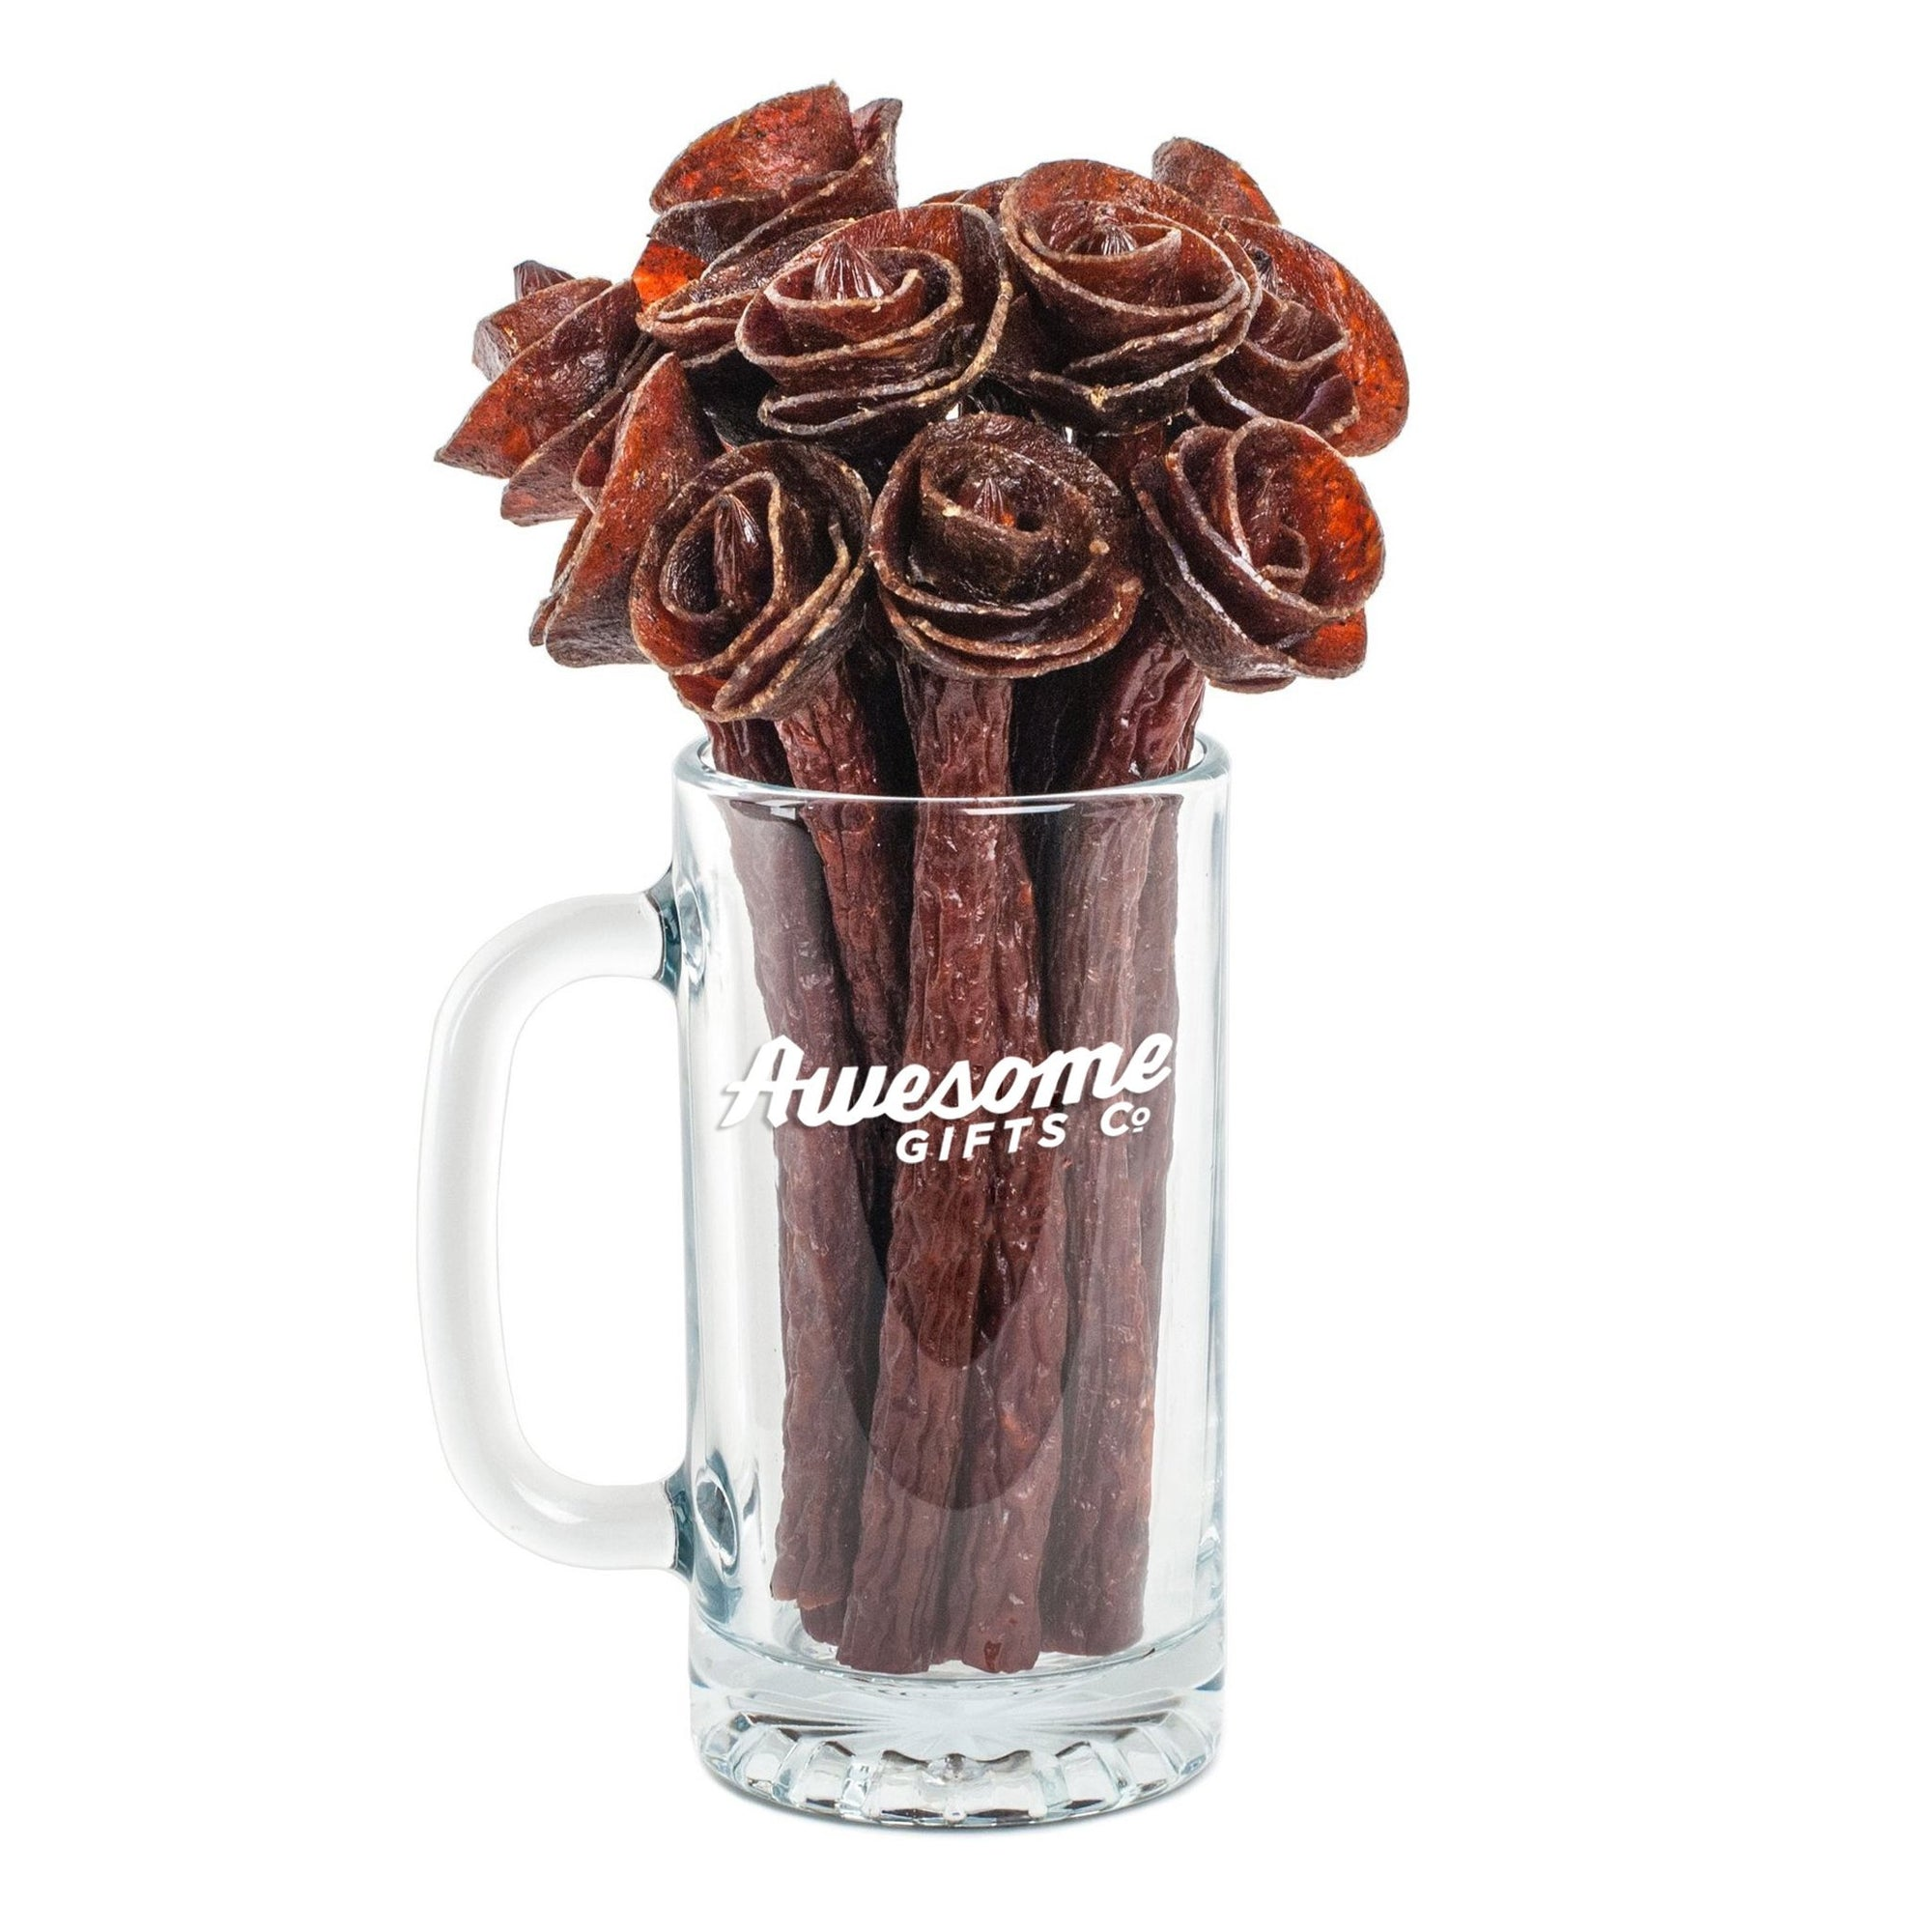 Beef Jerky Rose Bouquet & Beer Mug 1/2 Dozen / Original Awesome Gifts Co.